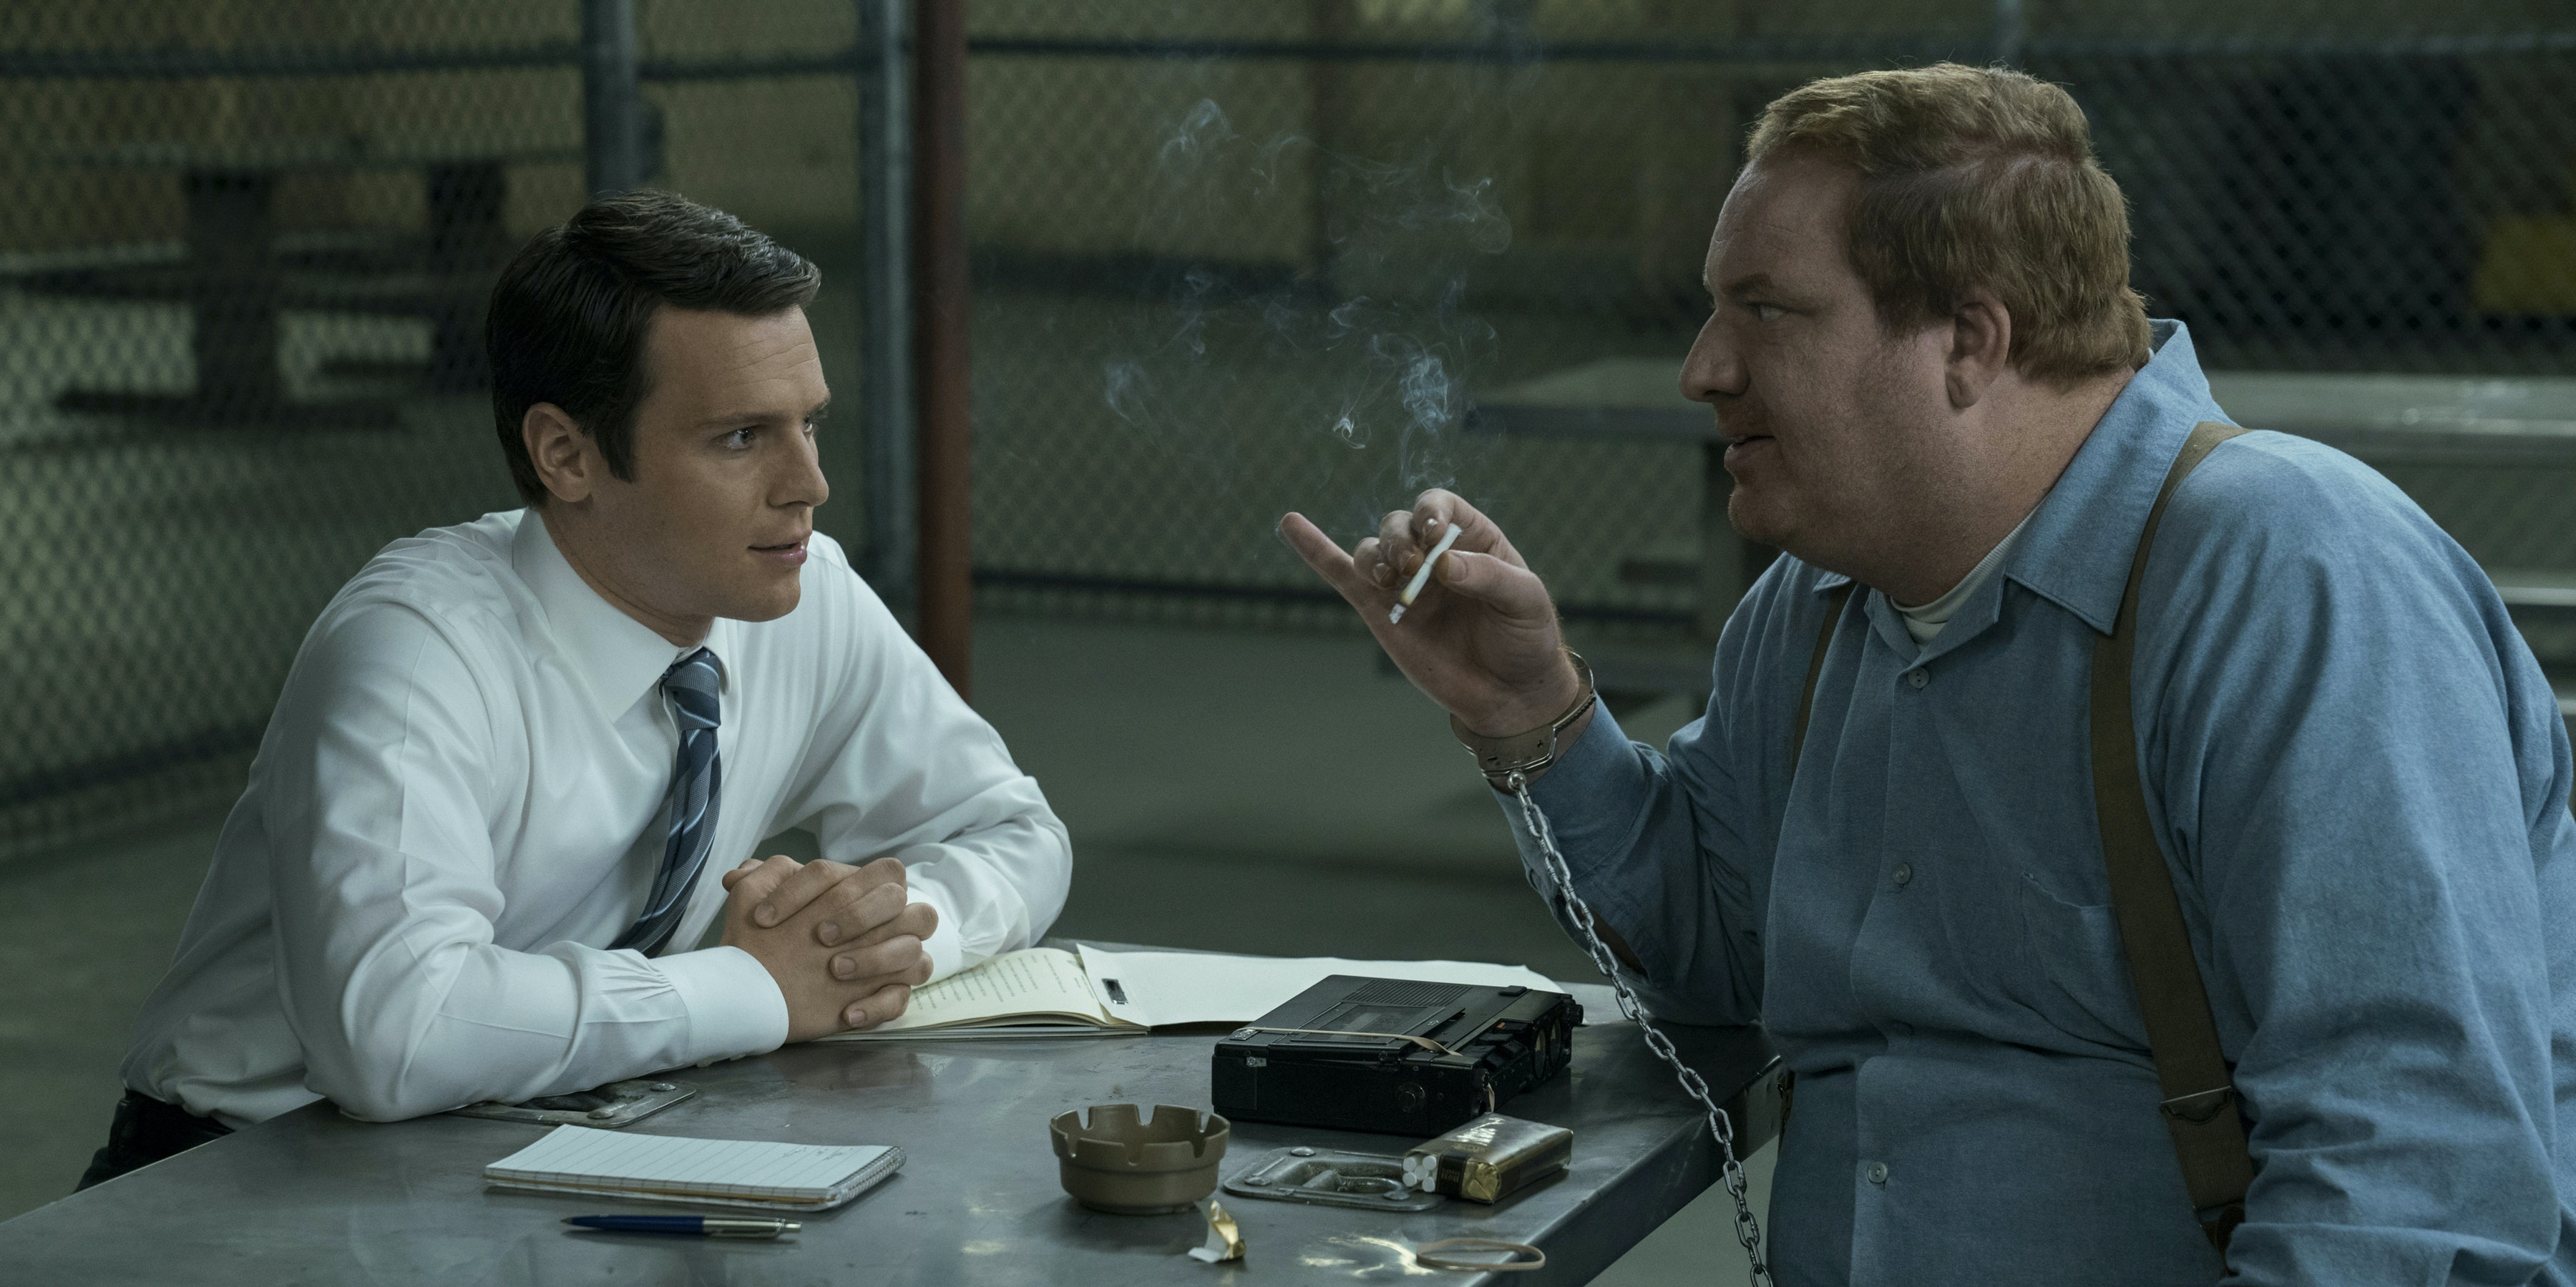 'Mindhunter' Season 2: Everything We Know About the Plot and the Killers